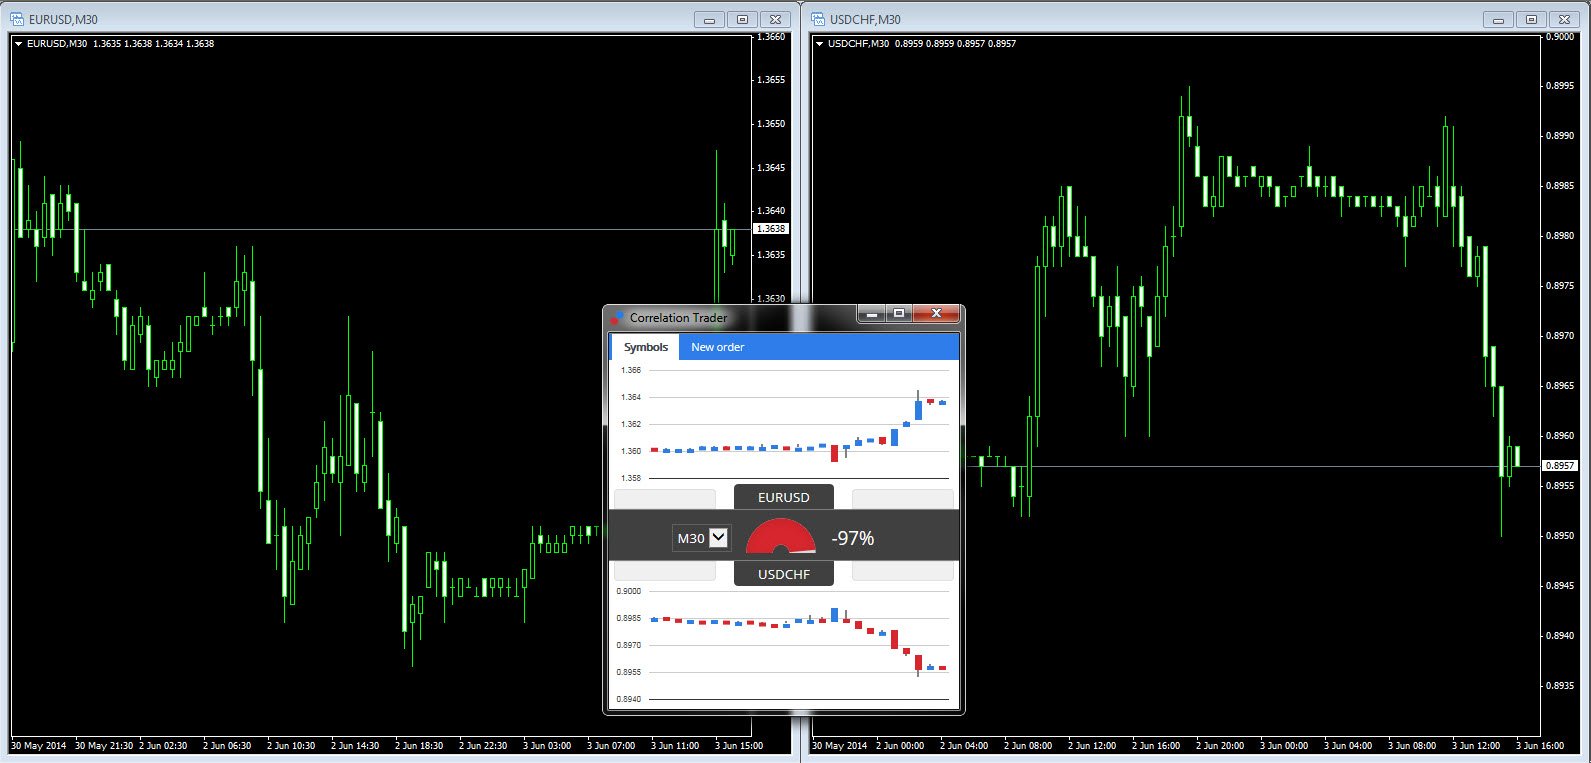 MetaTrader 4 Correlation Trader EA plugin